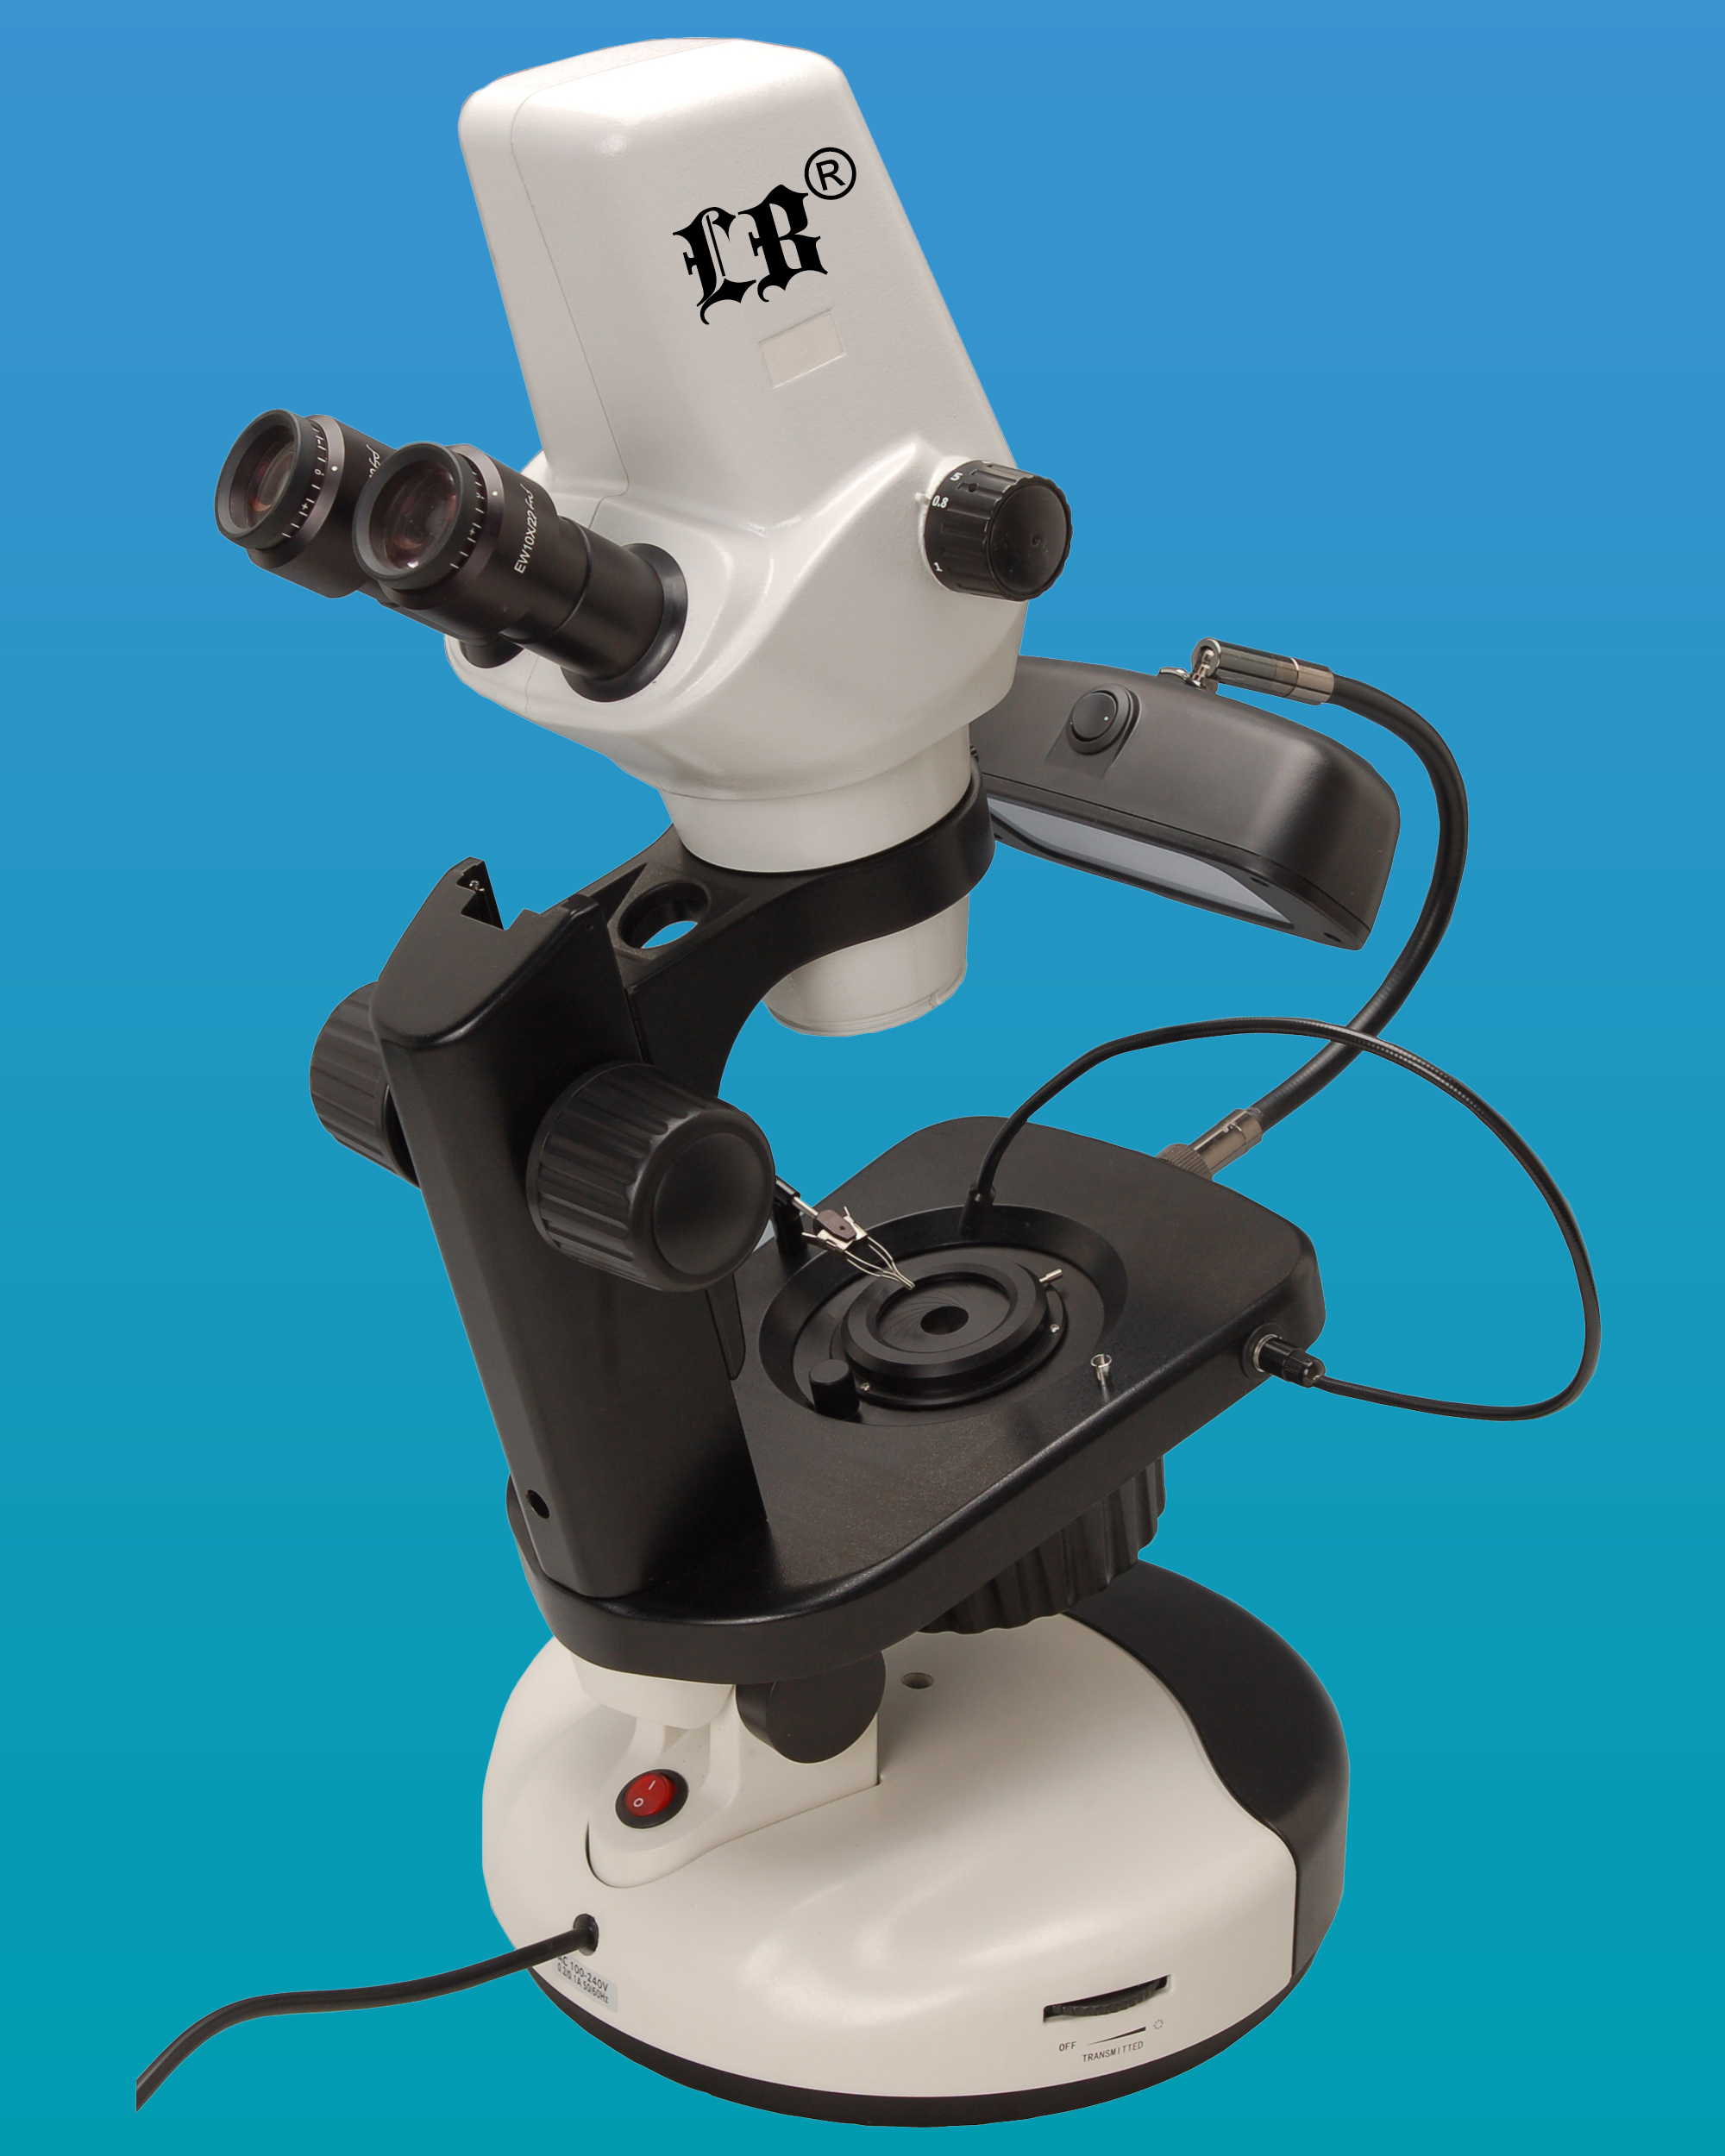 [LB-867] Binocular Digital Stereo Zoom Gemological Microscope w/ Extra Wide Field, 3.2MP Digital Camera, Halogen & Fluorescent Illumination